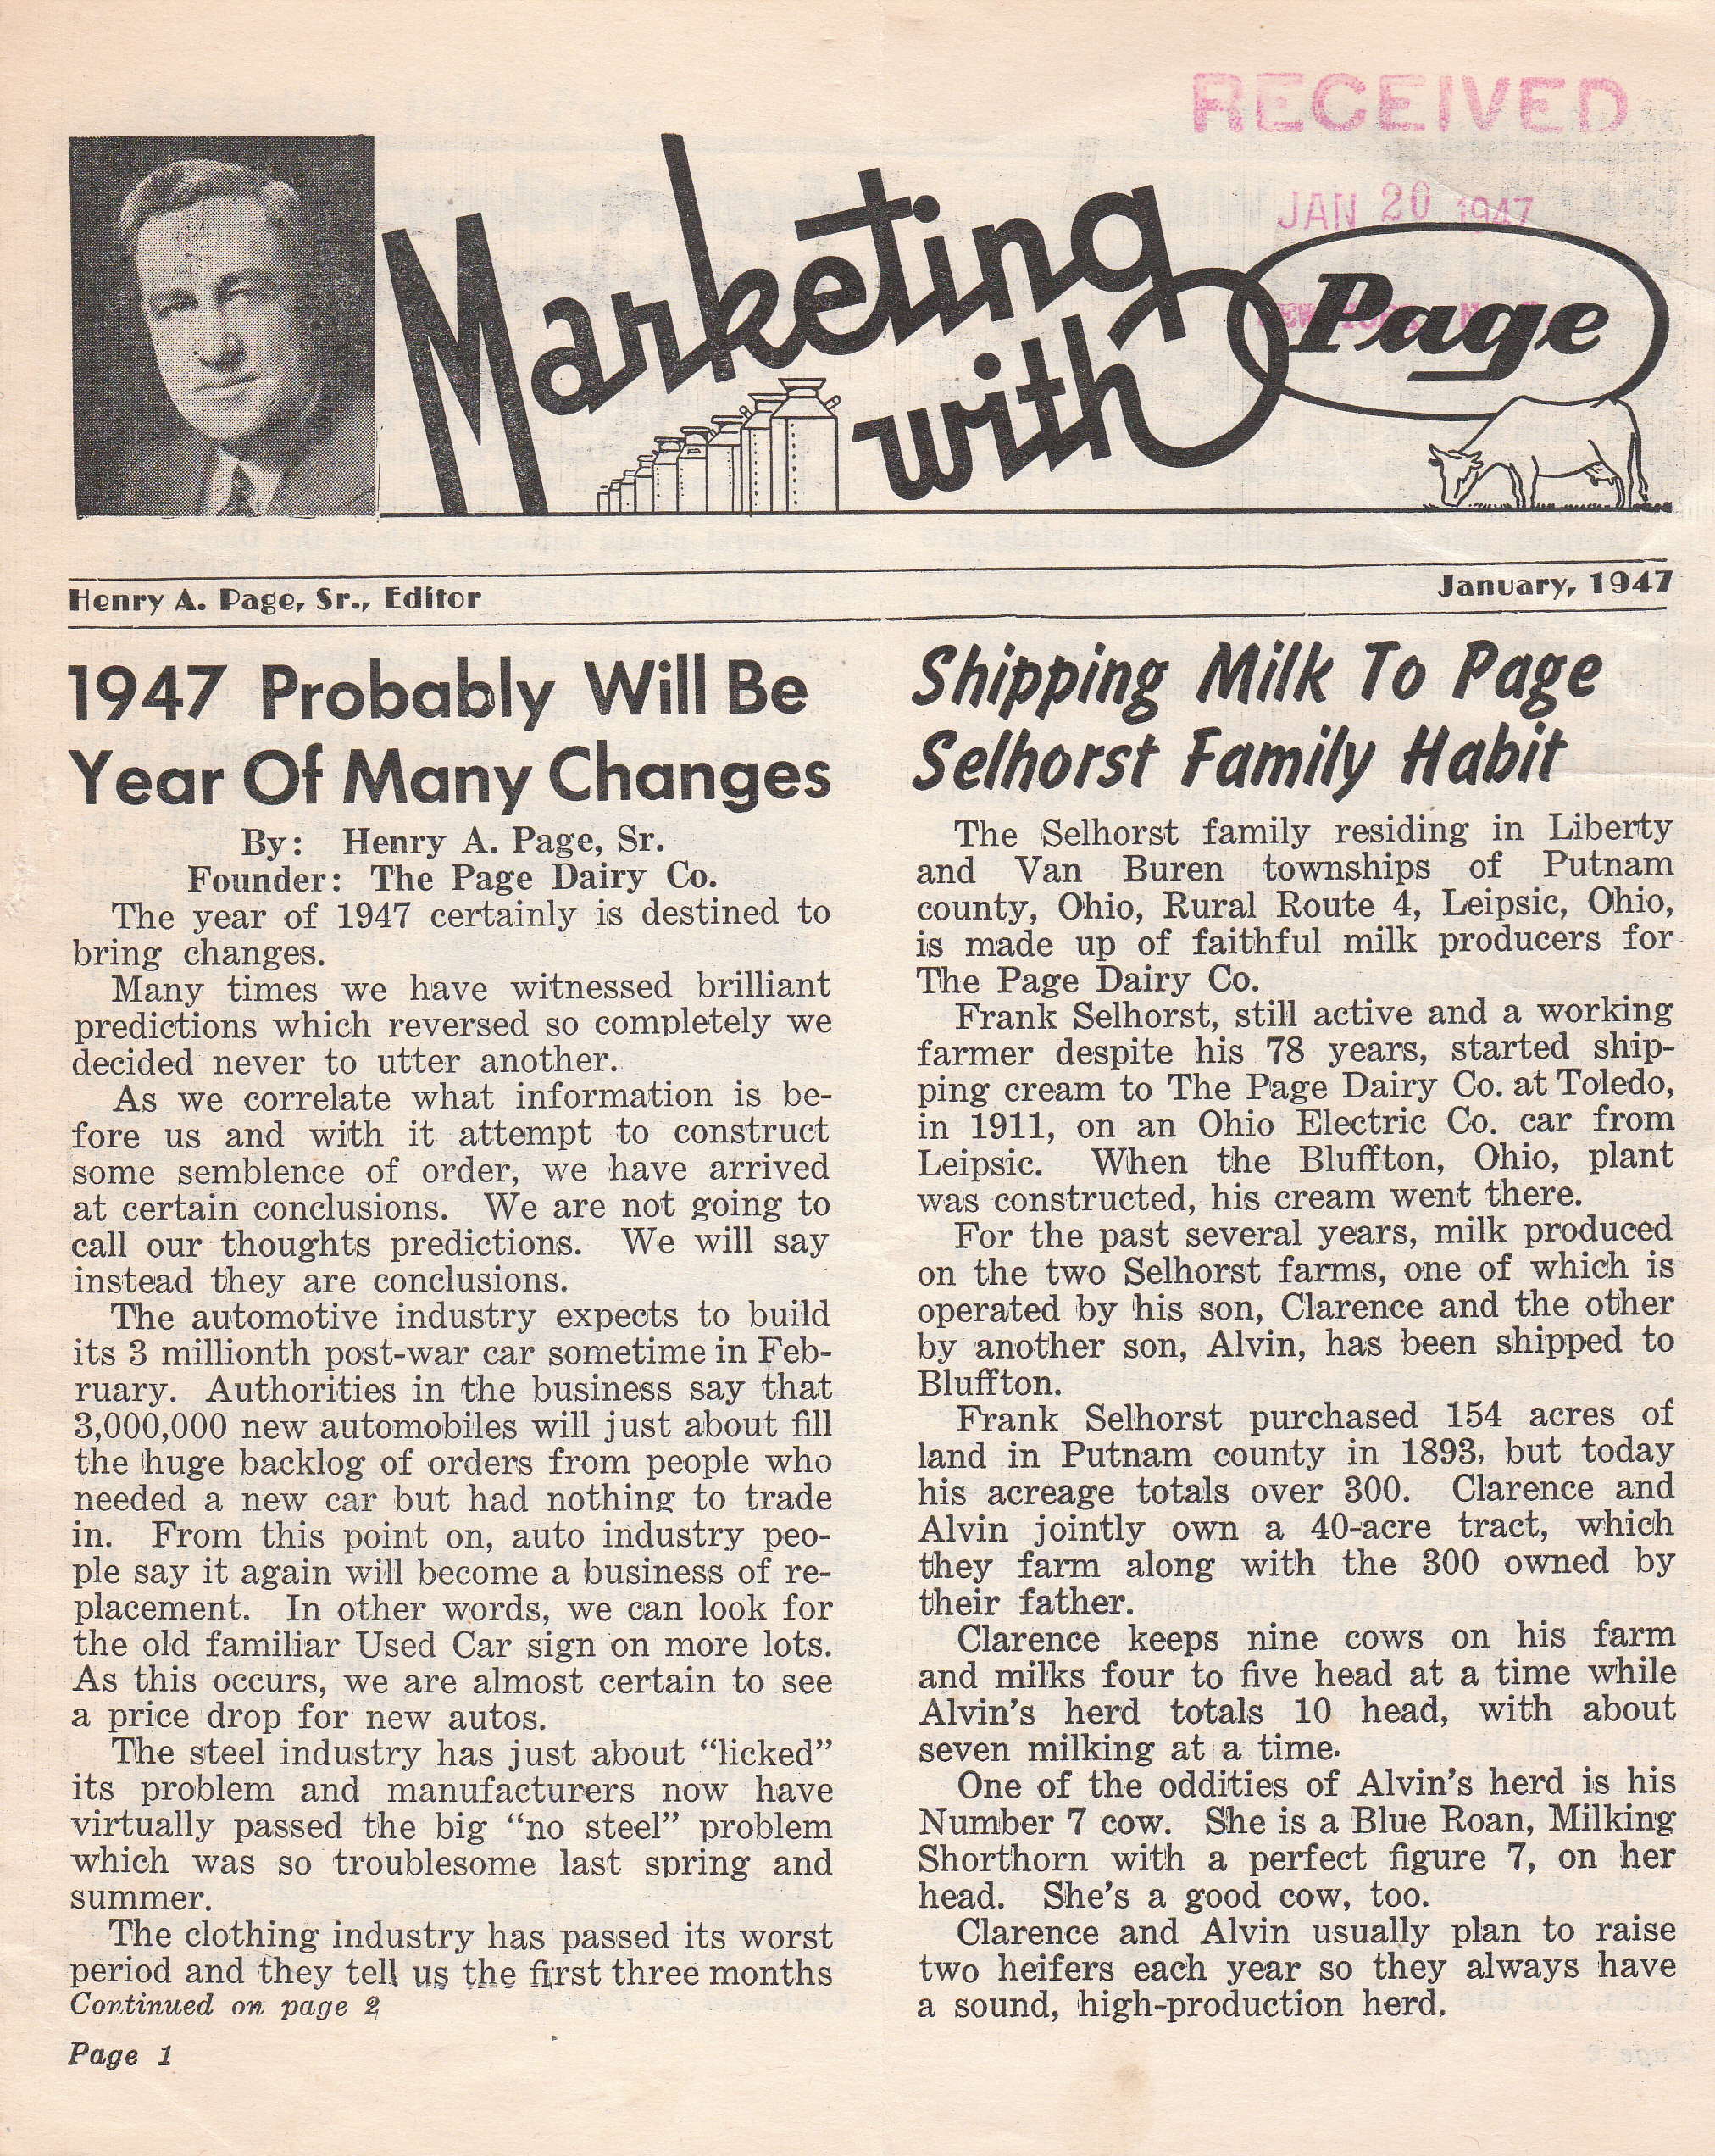 Marketing with Page January 1947